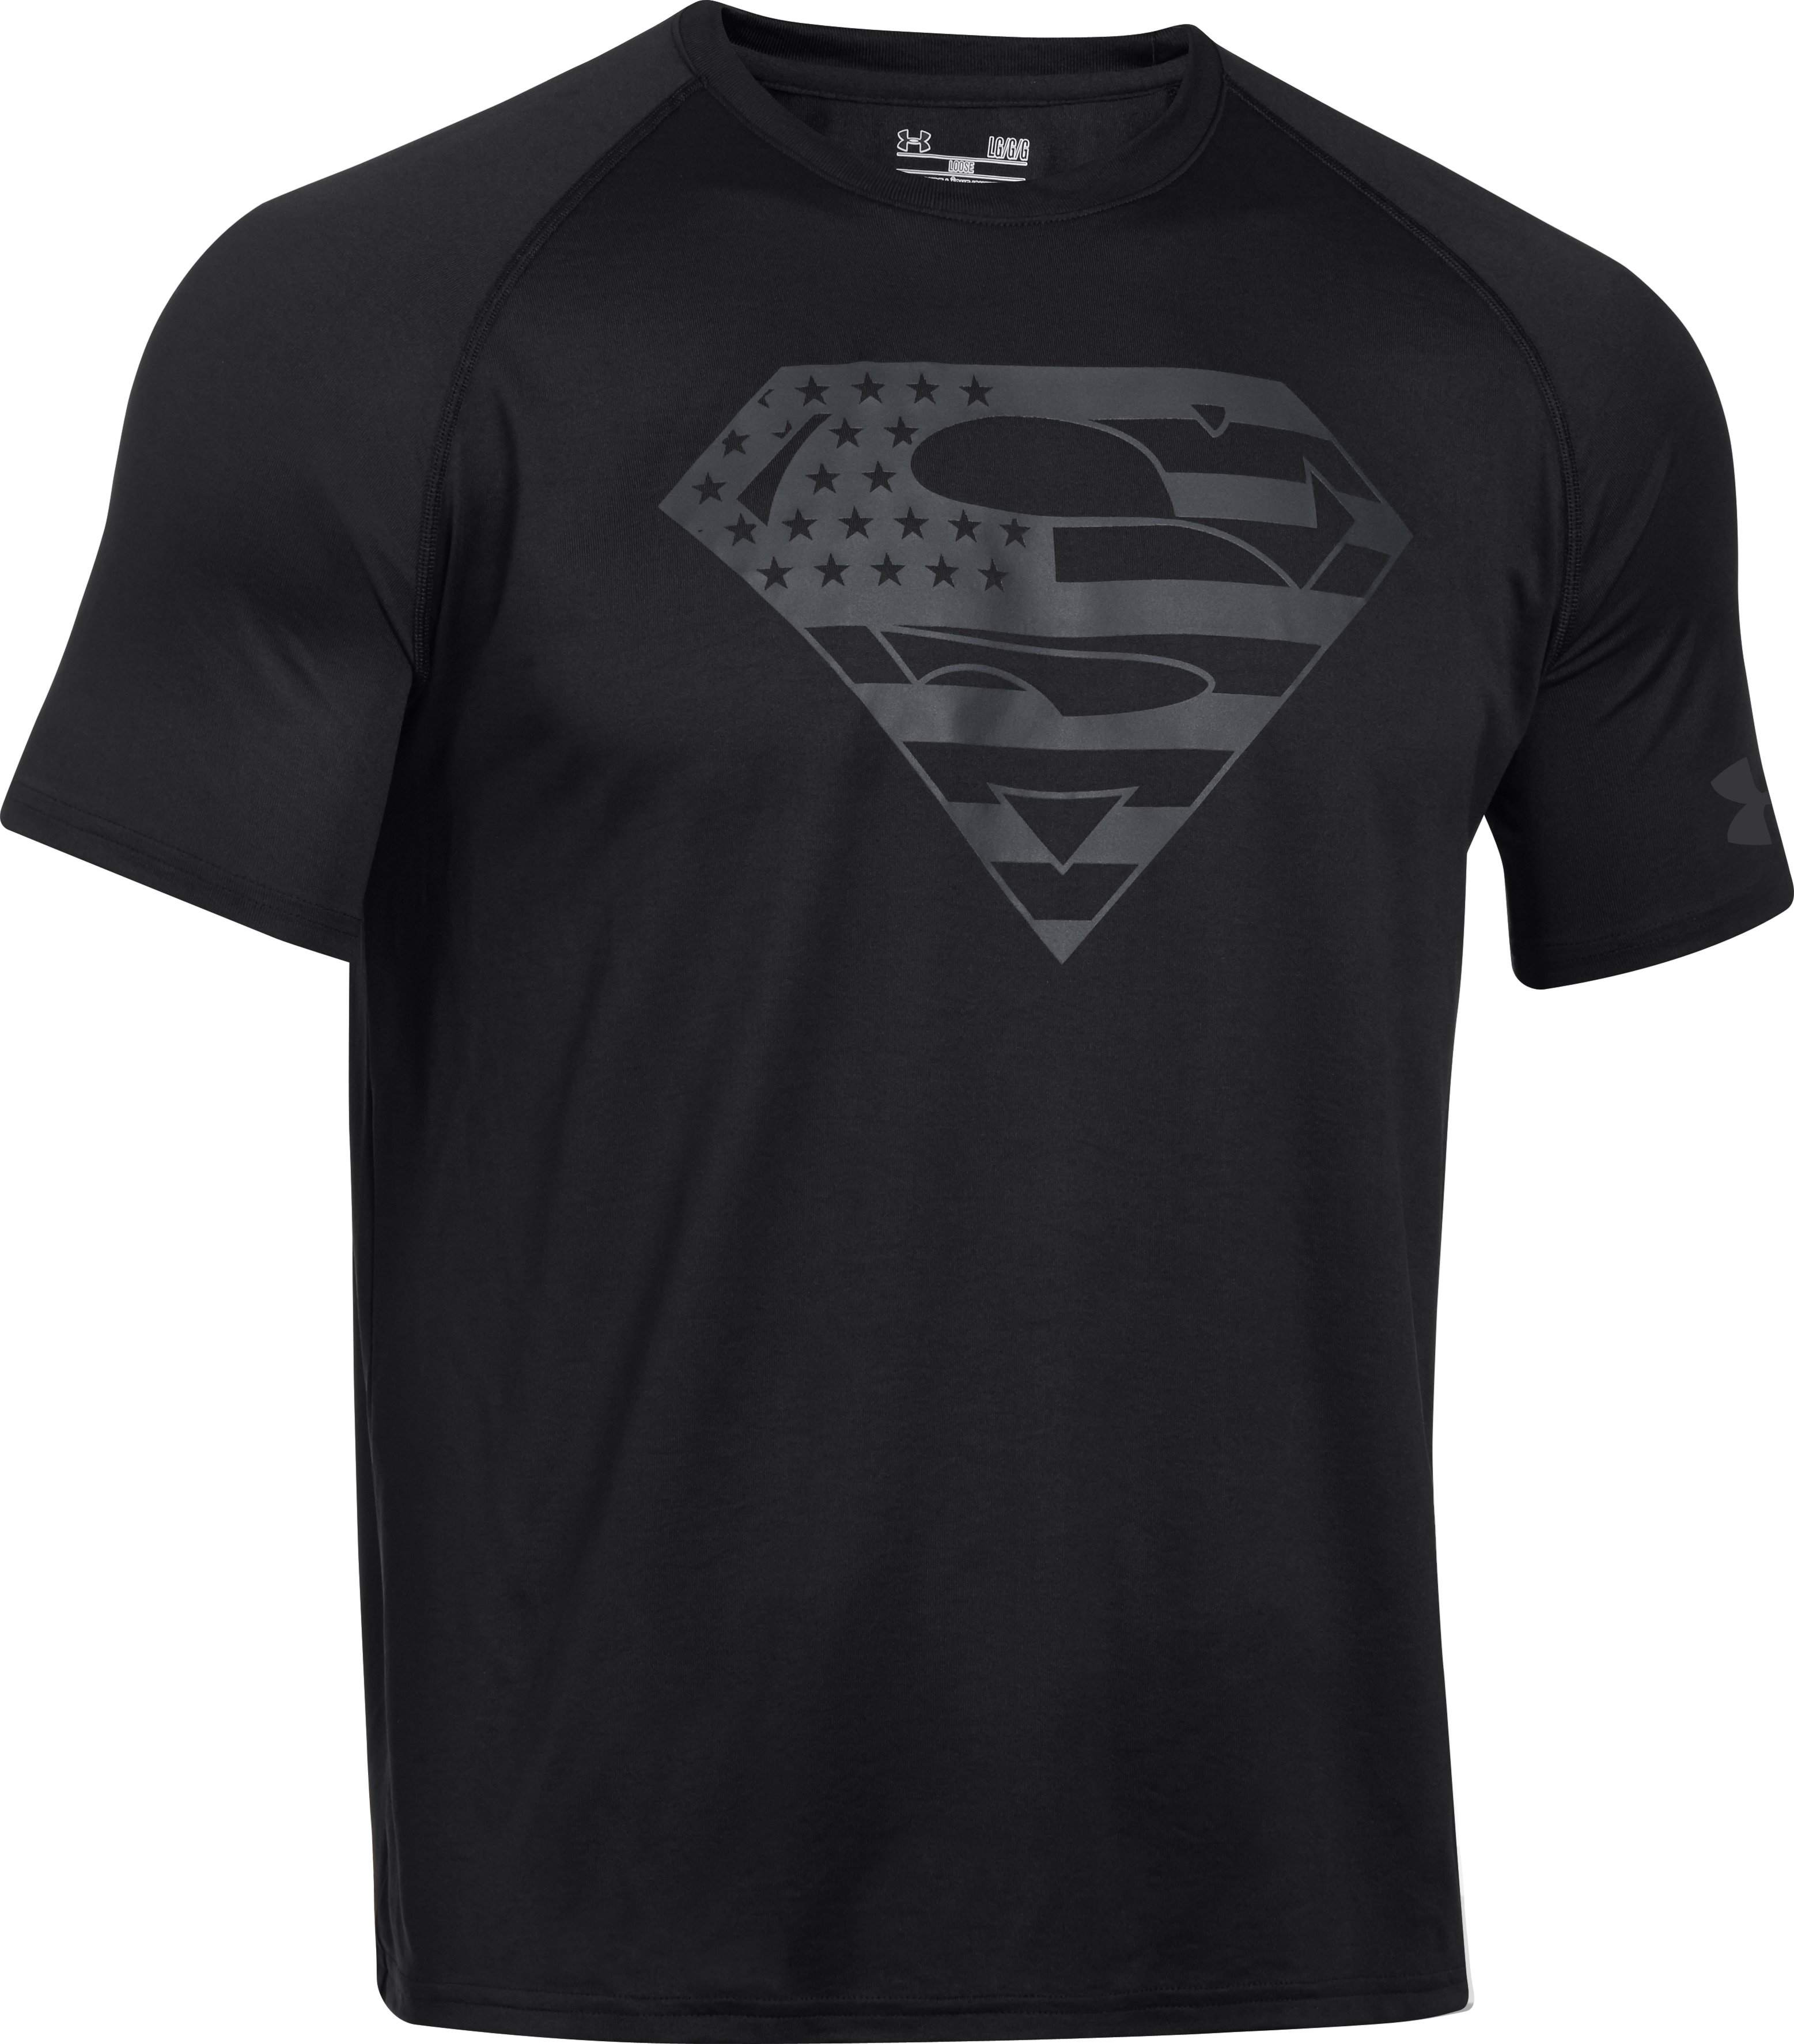 Men's Under Armour® Alter Ego USA Superman T-Shirt, Black